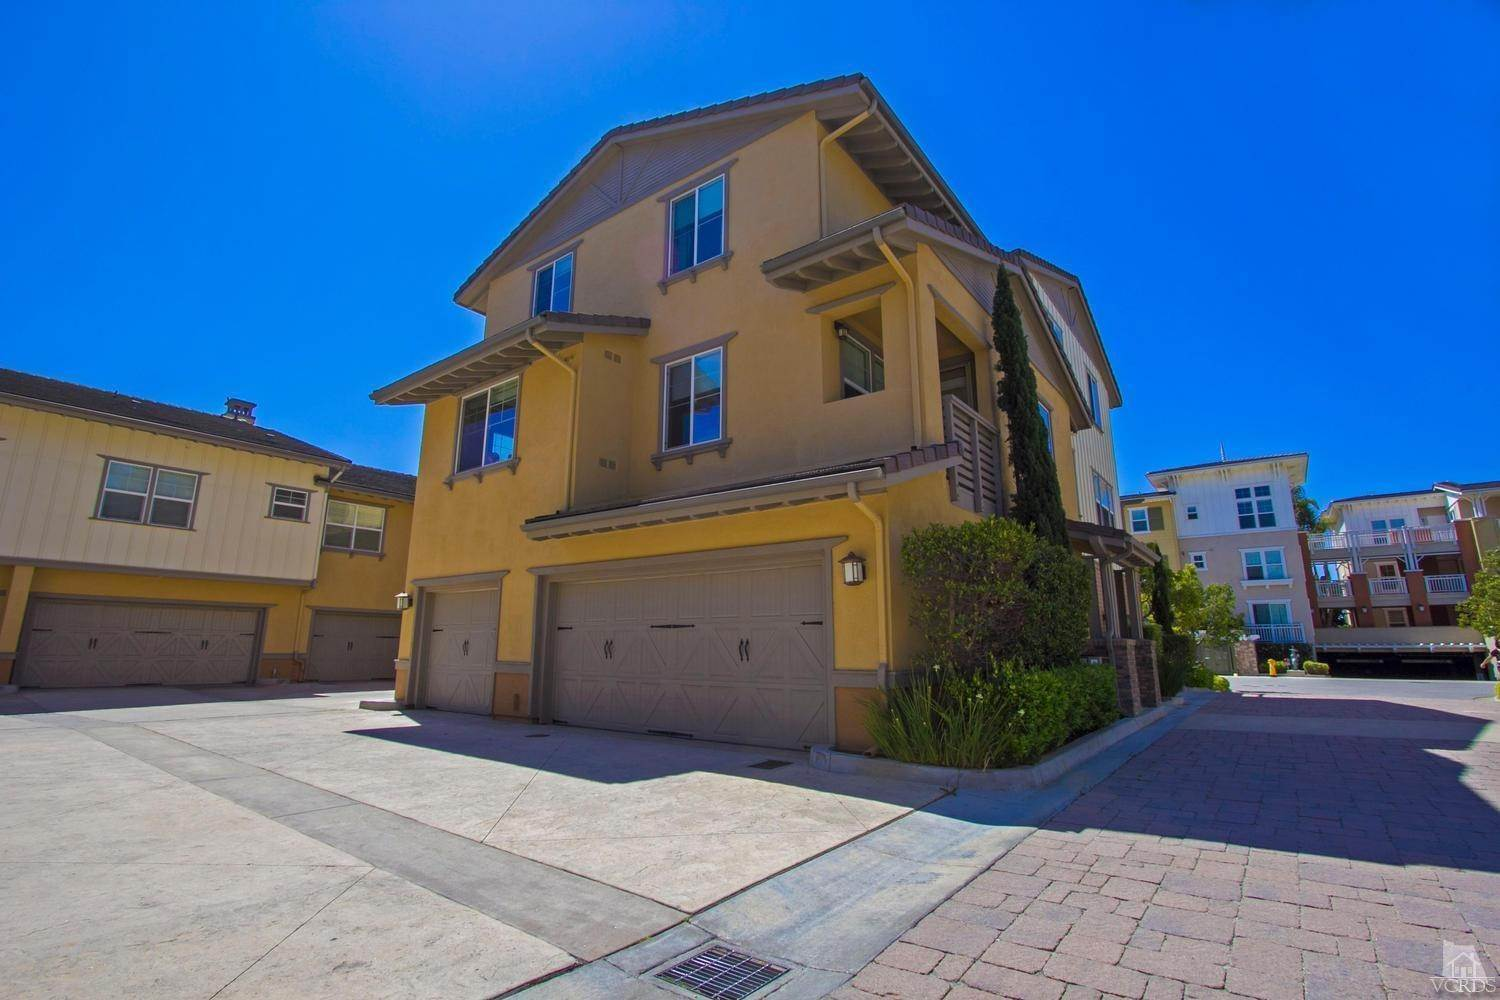 Condominiums en 1558 Windshore Way Oxnard, California 93035 Estados Unidos